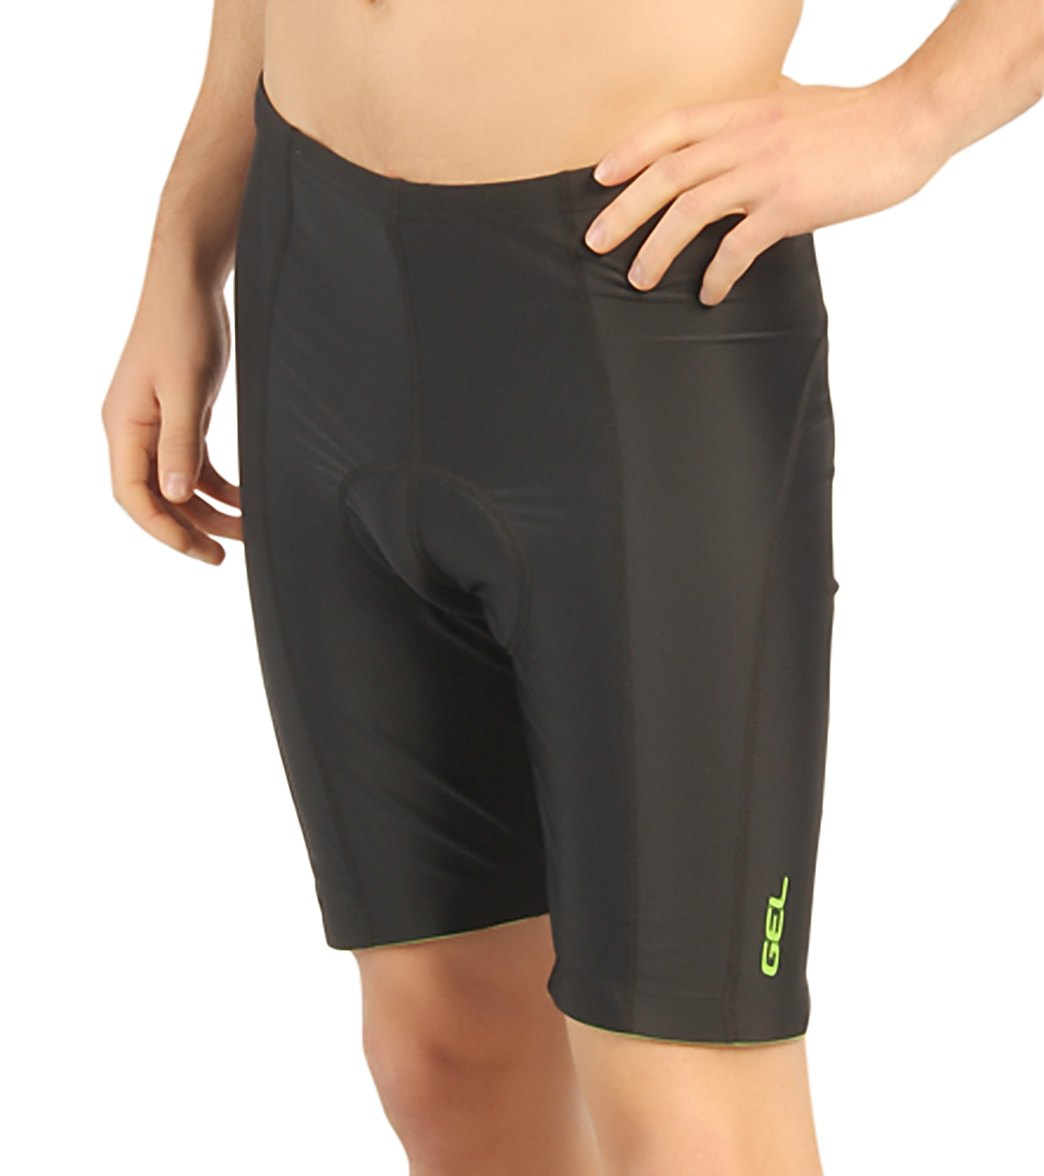 Canari Men s Velo Gel Cycling Shorts at SwimOutlet.com - Free Shipping 689cb3b8d